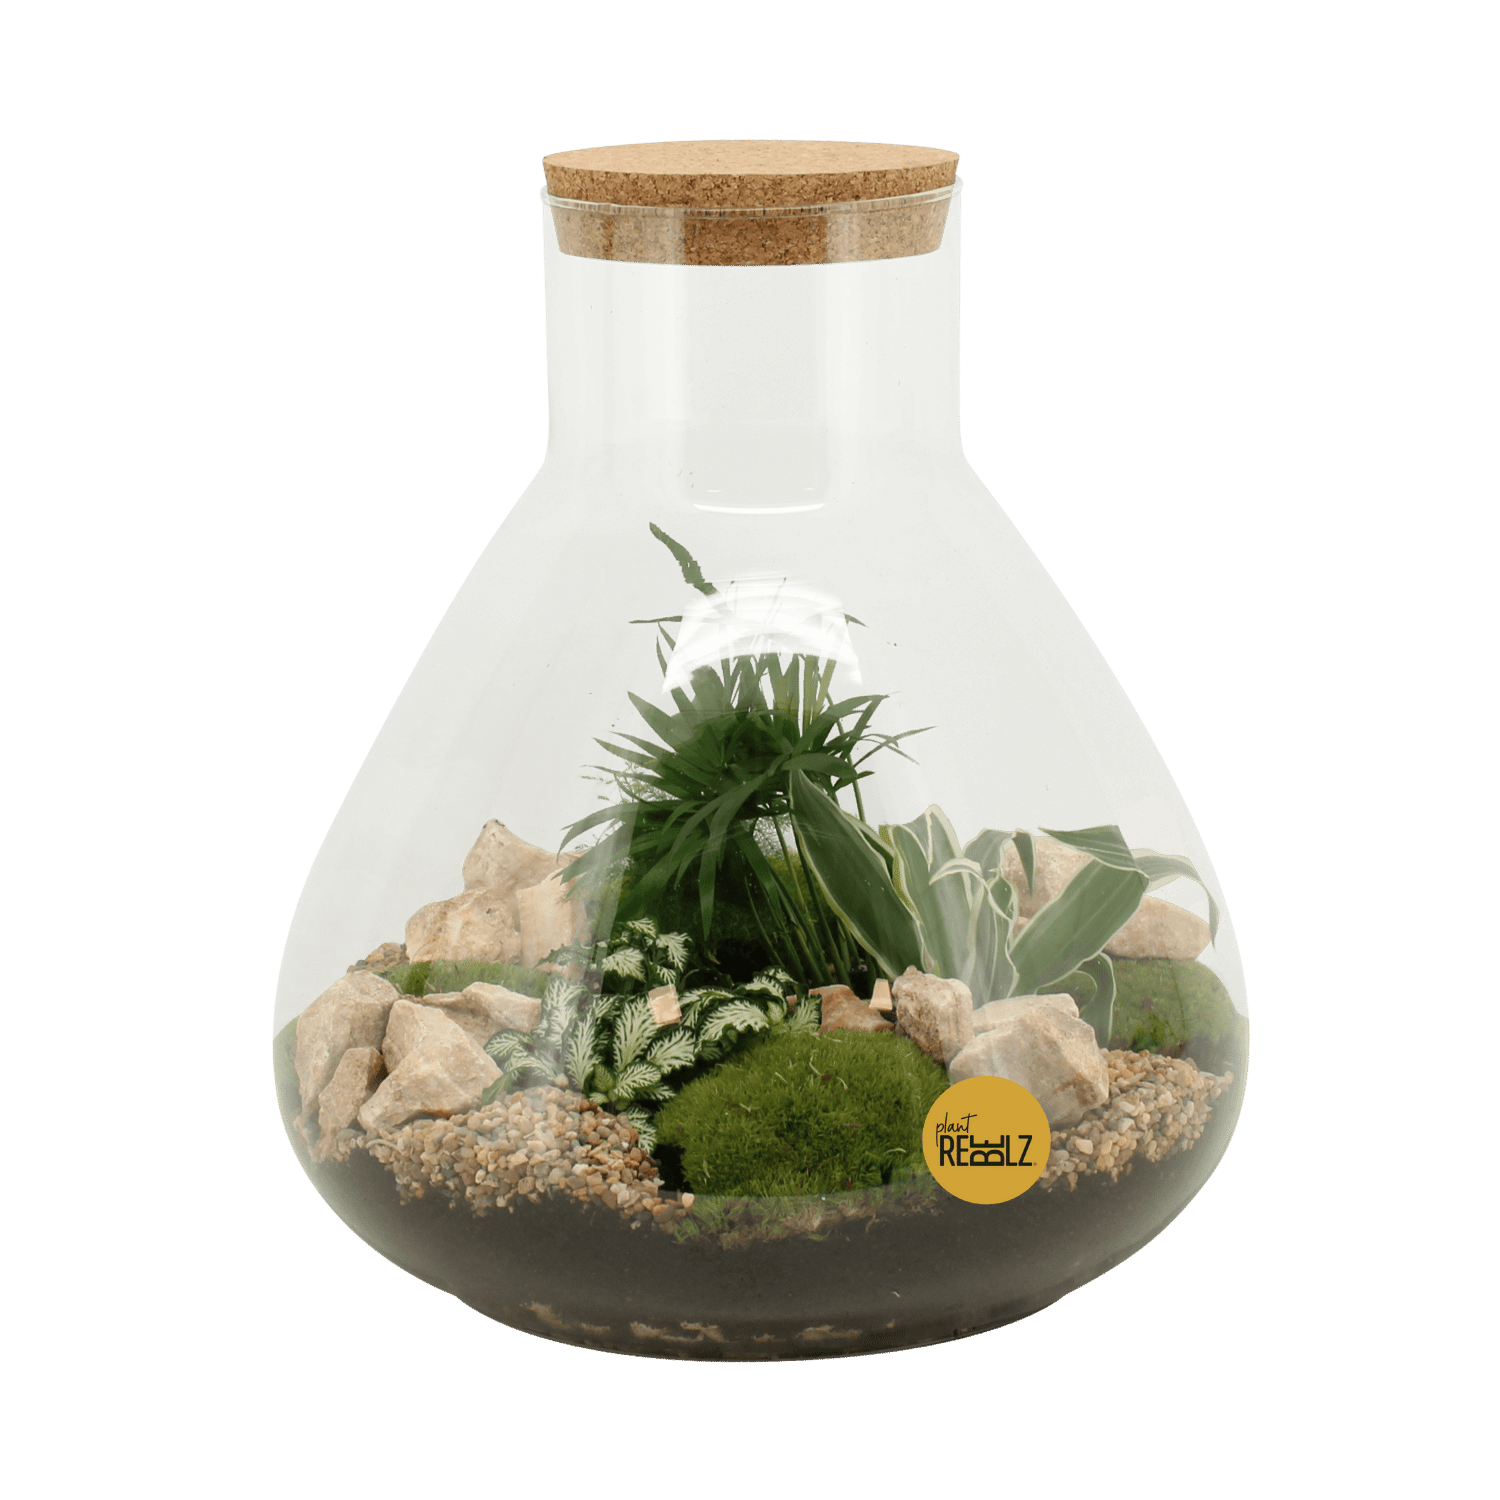 Sharp Soldier - Terrarium - Plant Rebelz (1)